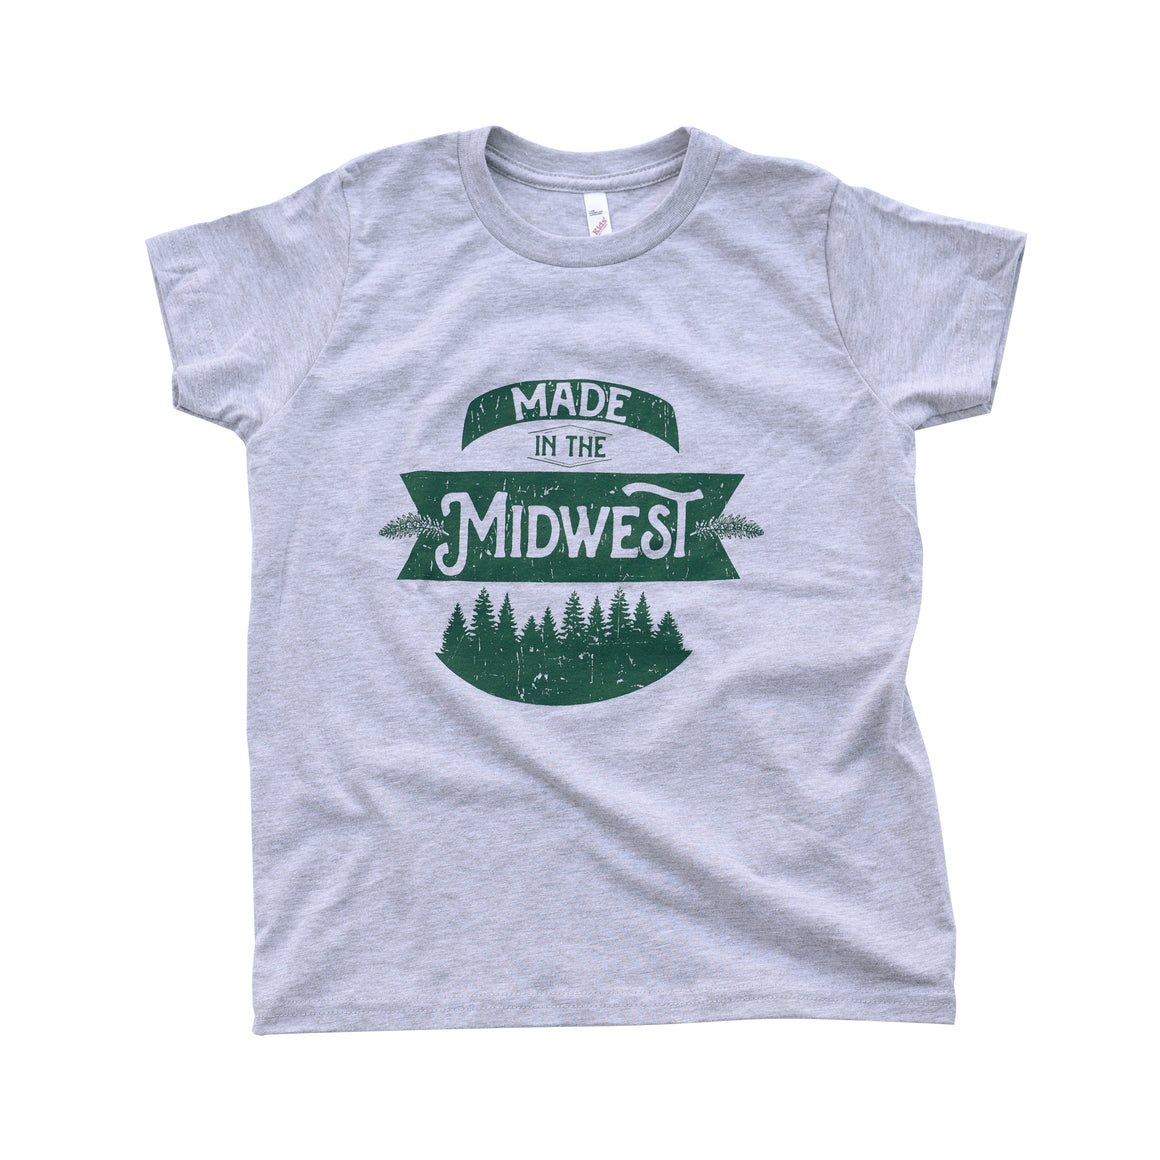 Made in the Midwest - Kids